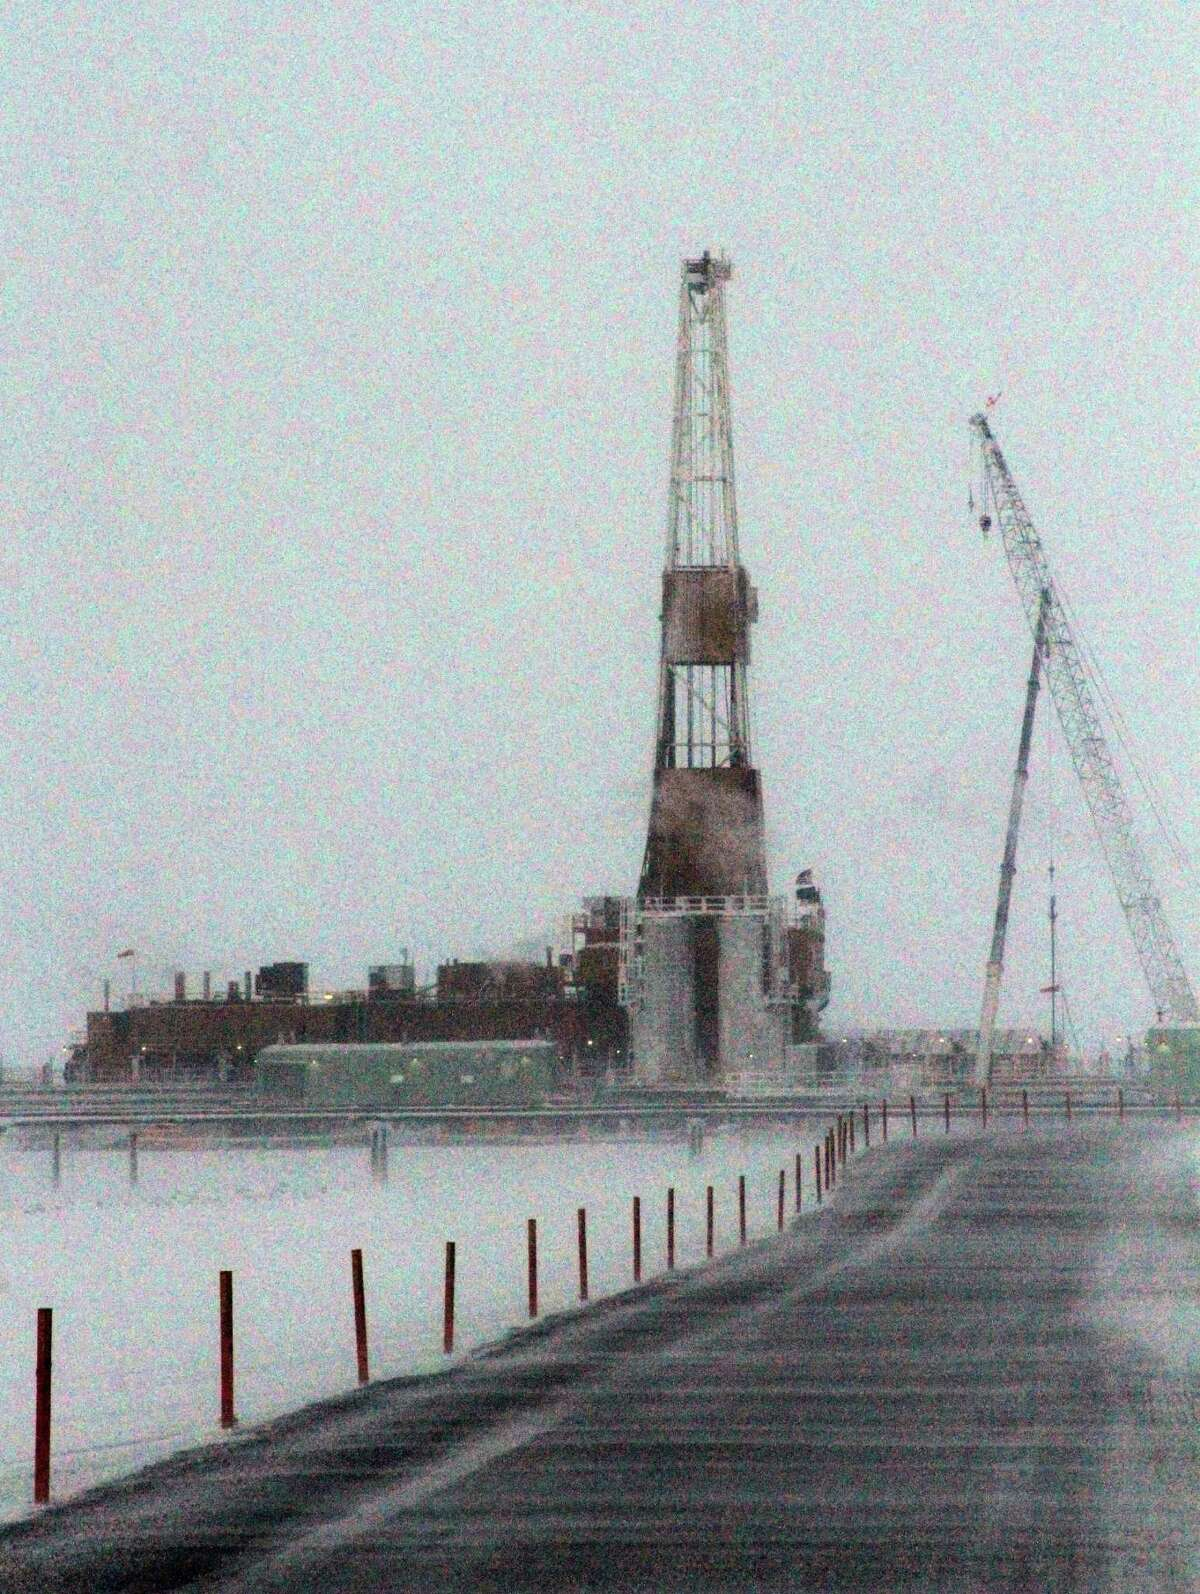 This Feb. 9, 2016, photo shows a million-pound drilling rig looming in the distance at the CD5 drilling site on Alaska's North Slope. ConocoPhillips in October 2015 became the first to drill for oil in the National Petroleum Reserve-Alaska, a region the size of Indiana set aside by President Warren G. Harding in 1923. (AP Photo/Mark Thiessen)